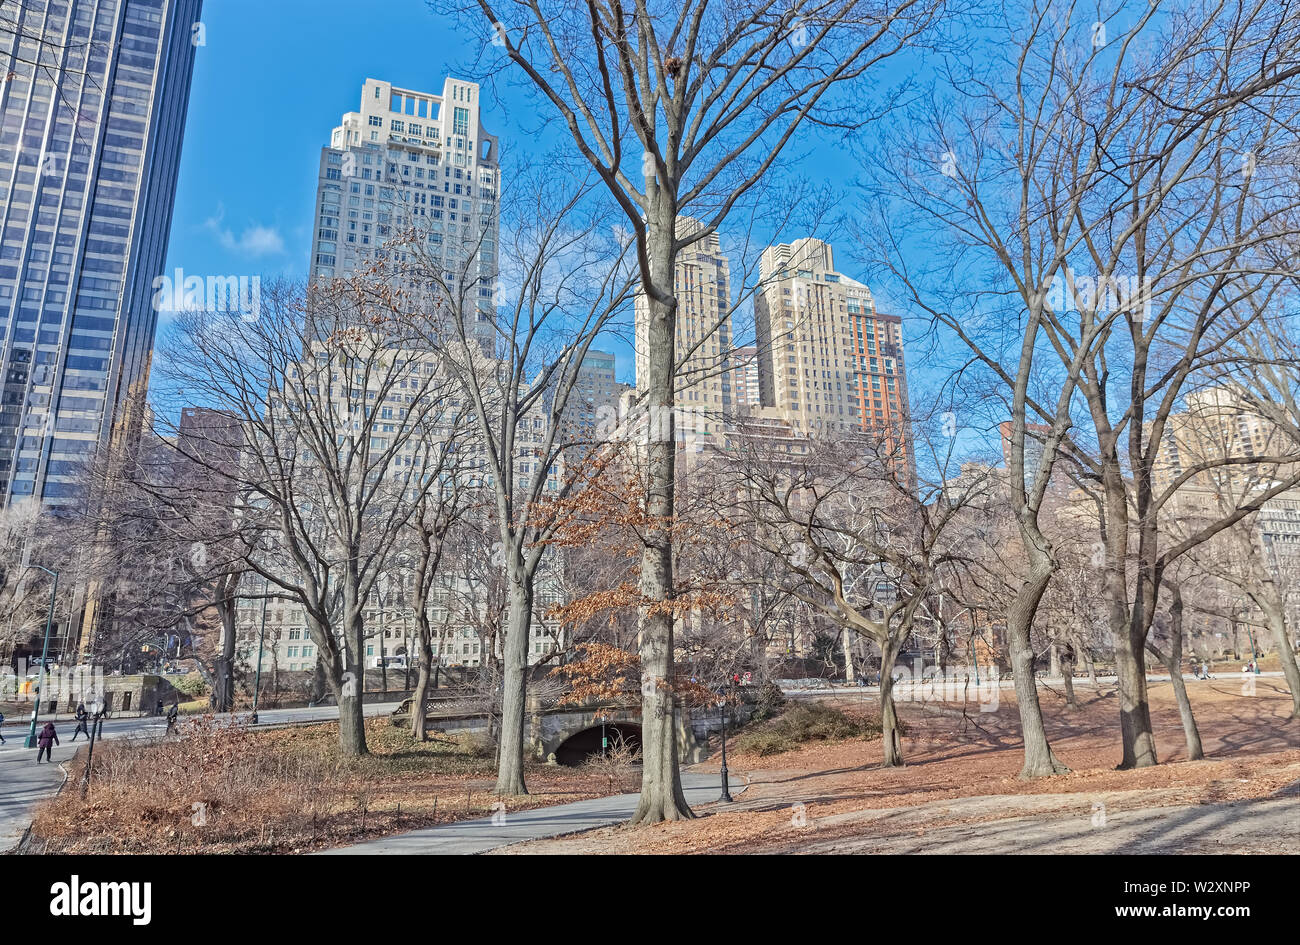 City view from the Central Park in winter season, Manhattan New York City USA. - Stock Image